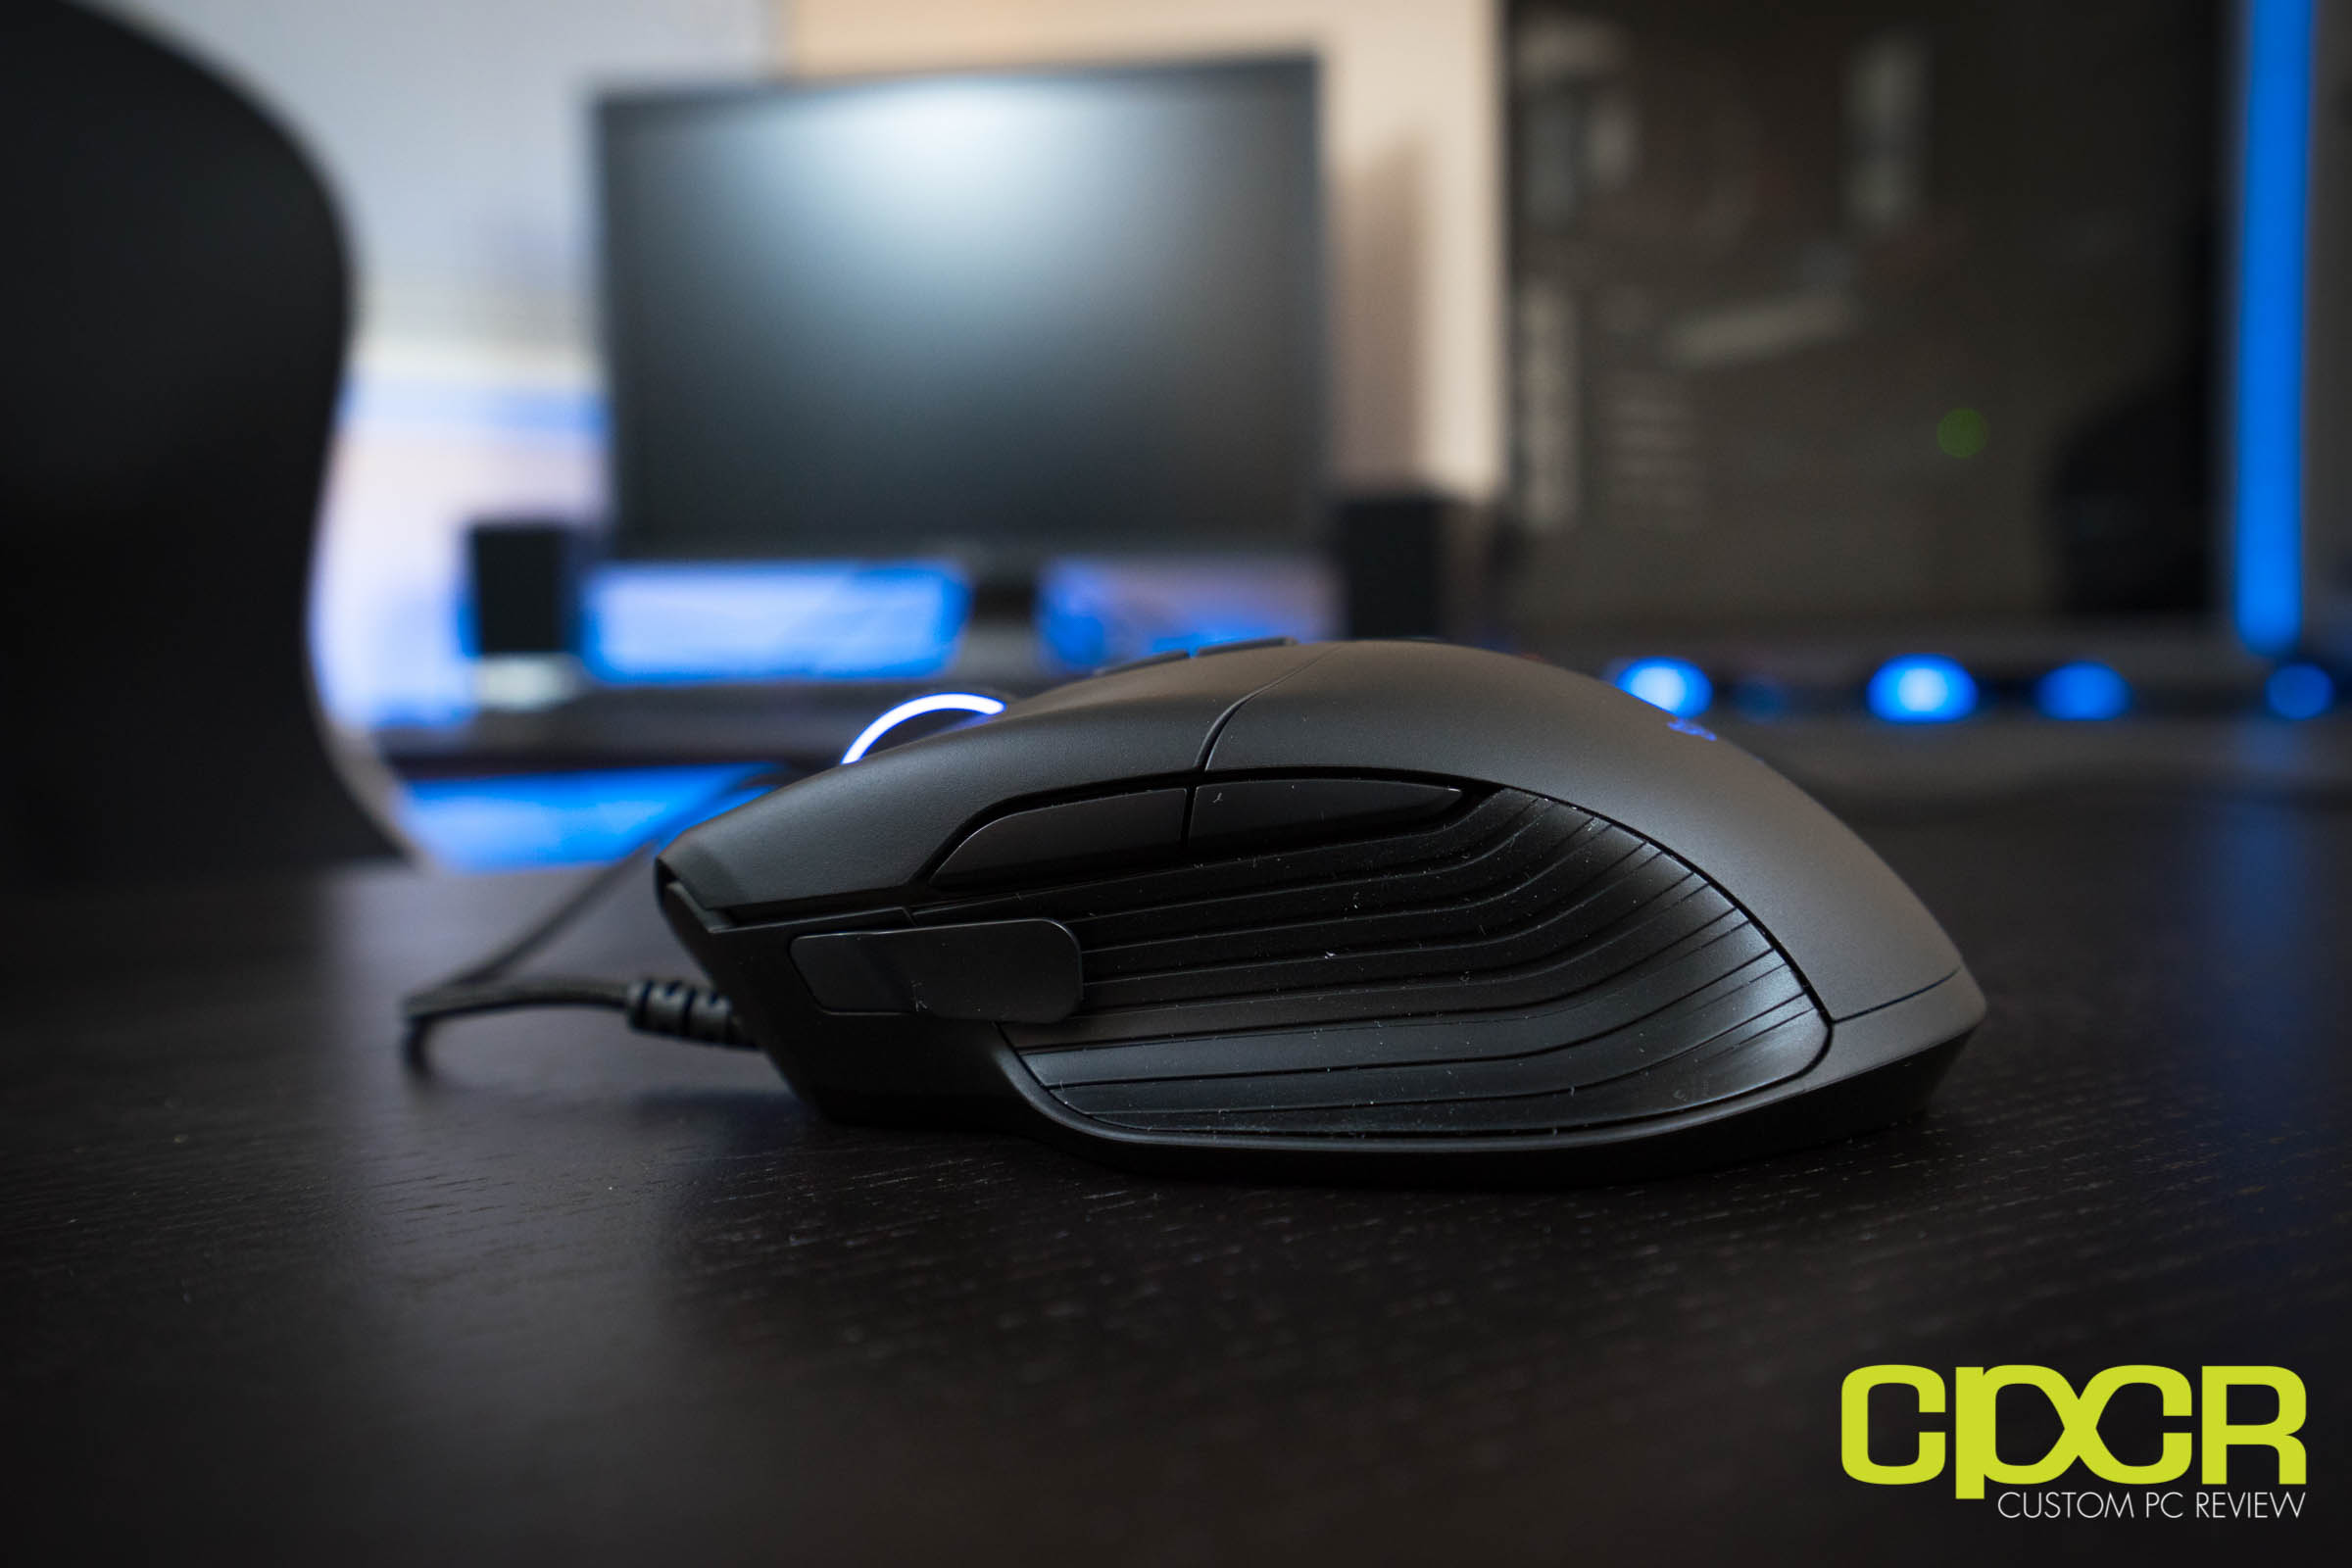 Pc gaming mouse review